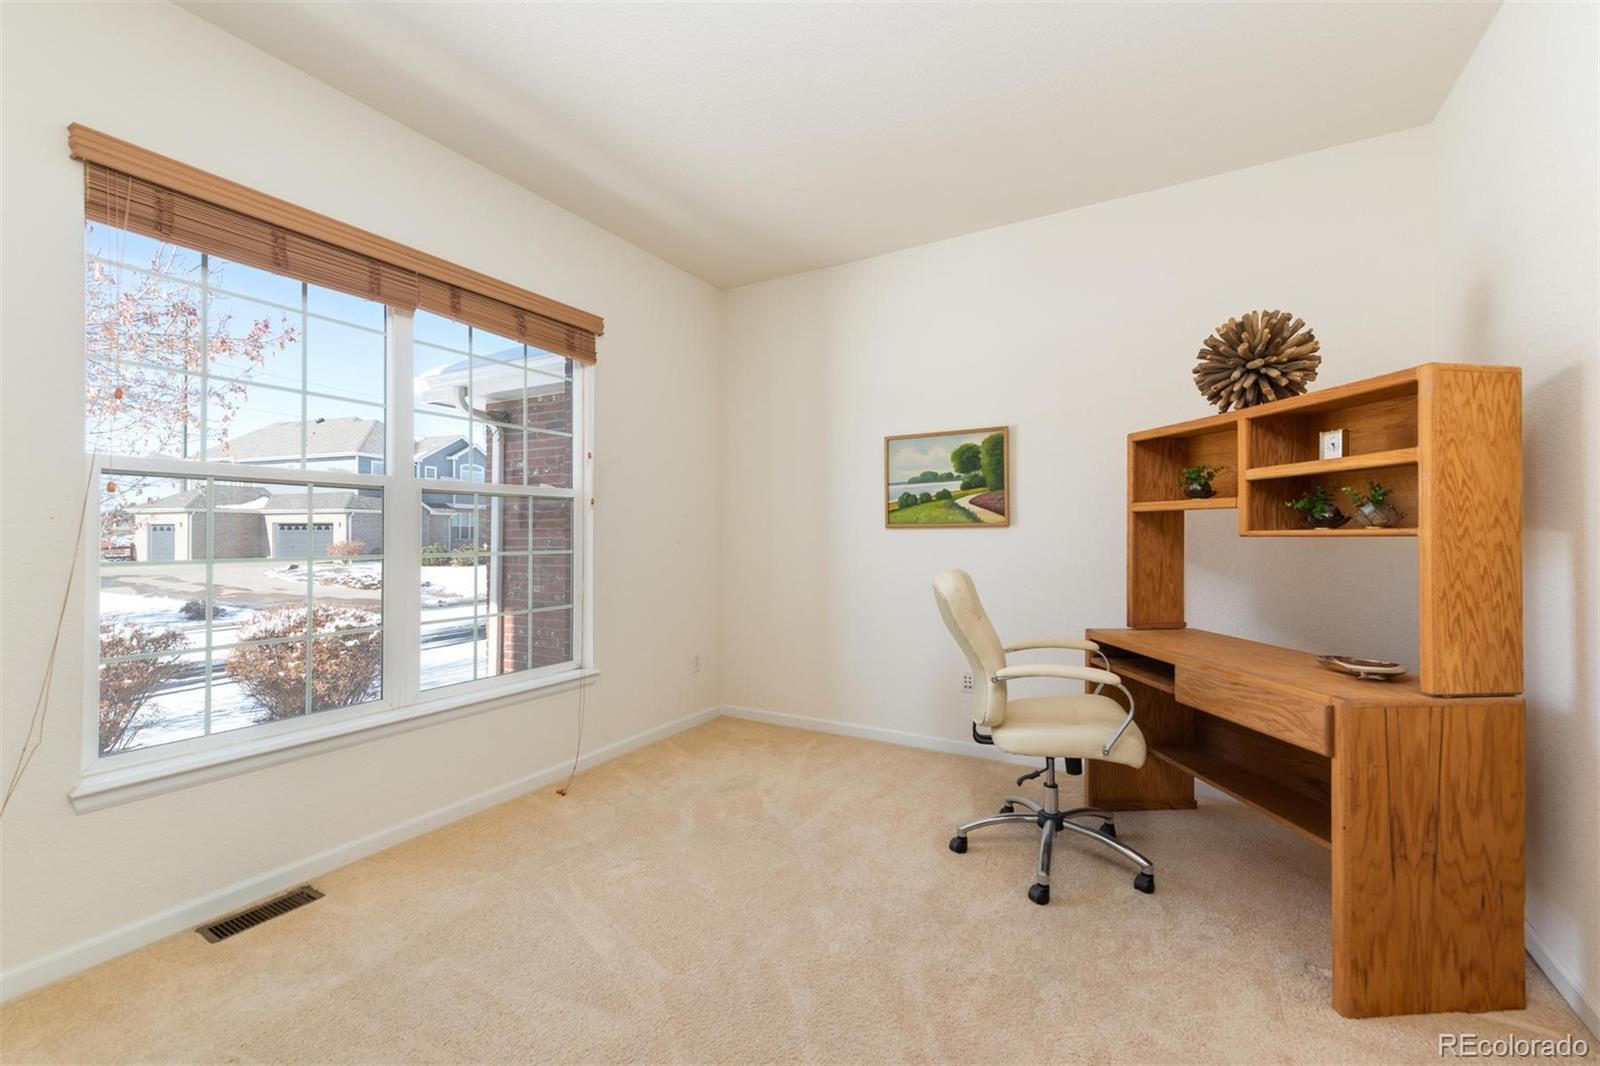 MLS# 3442851 - 13 - 6552 S Ouray Way, Aurora, CO 80016